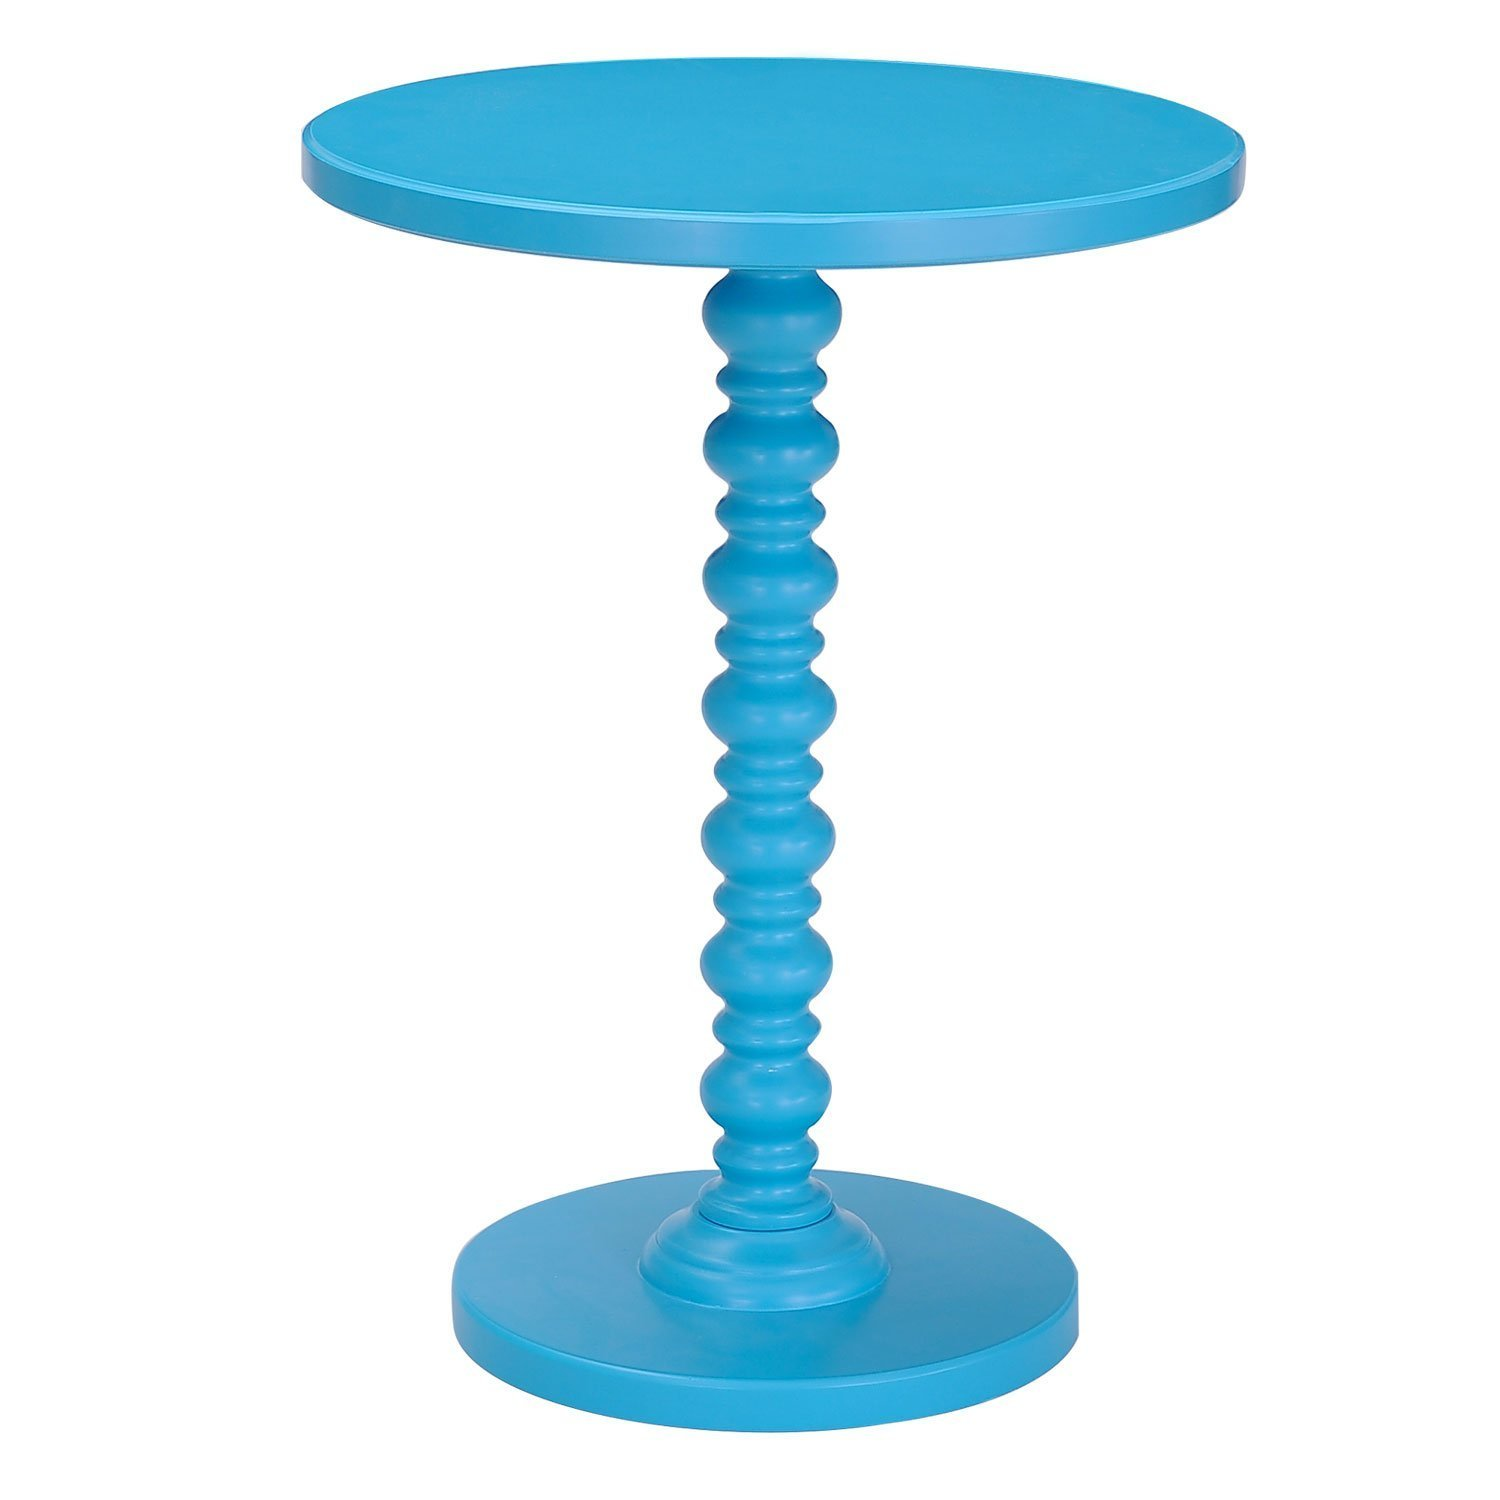 Wooden Spindle Table ~ Adeco round wood spindle decorative end side table sky